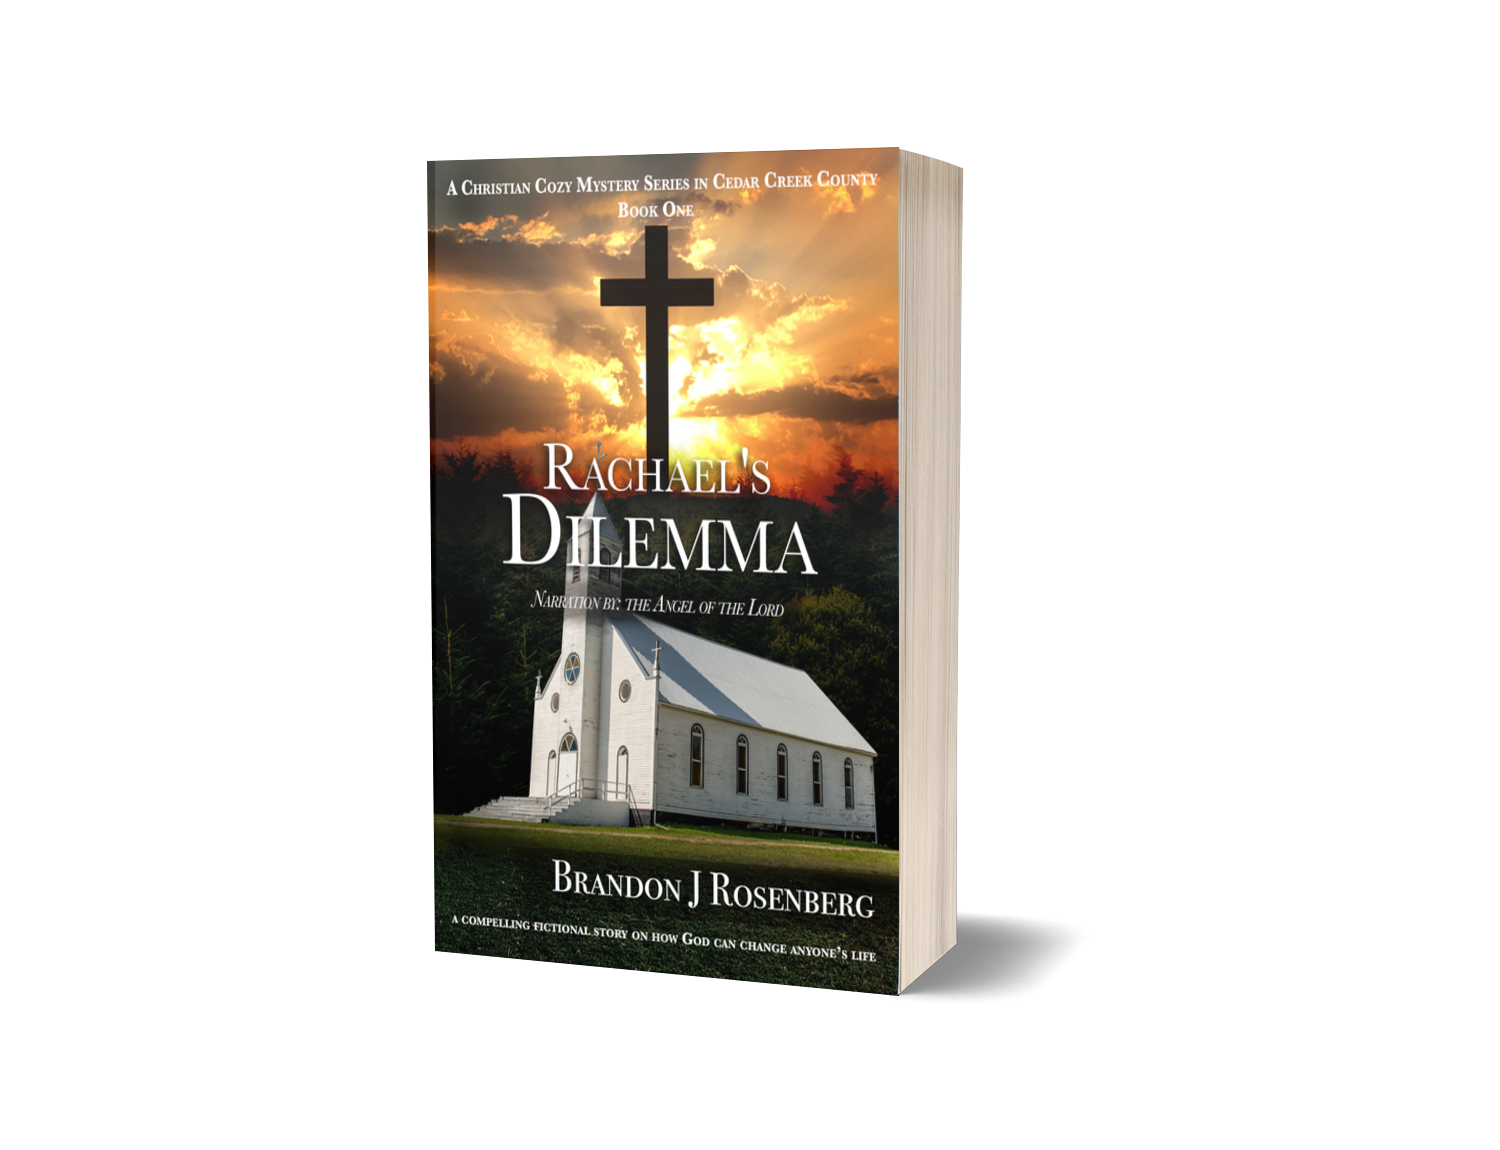 Rachael's Dilemma - Book One (Autographed by Brandon J Rosenberg)